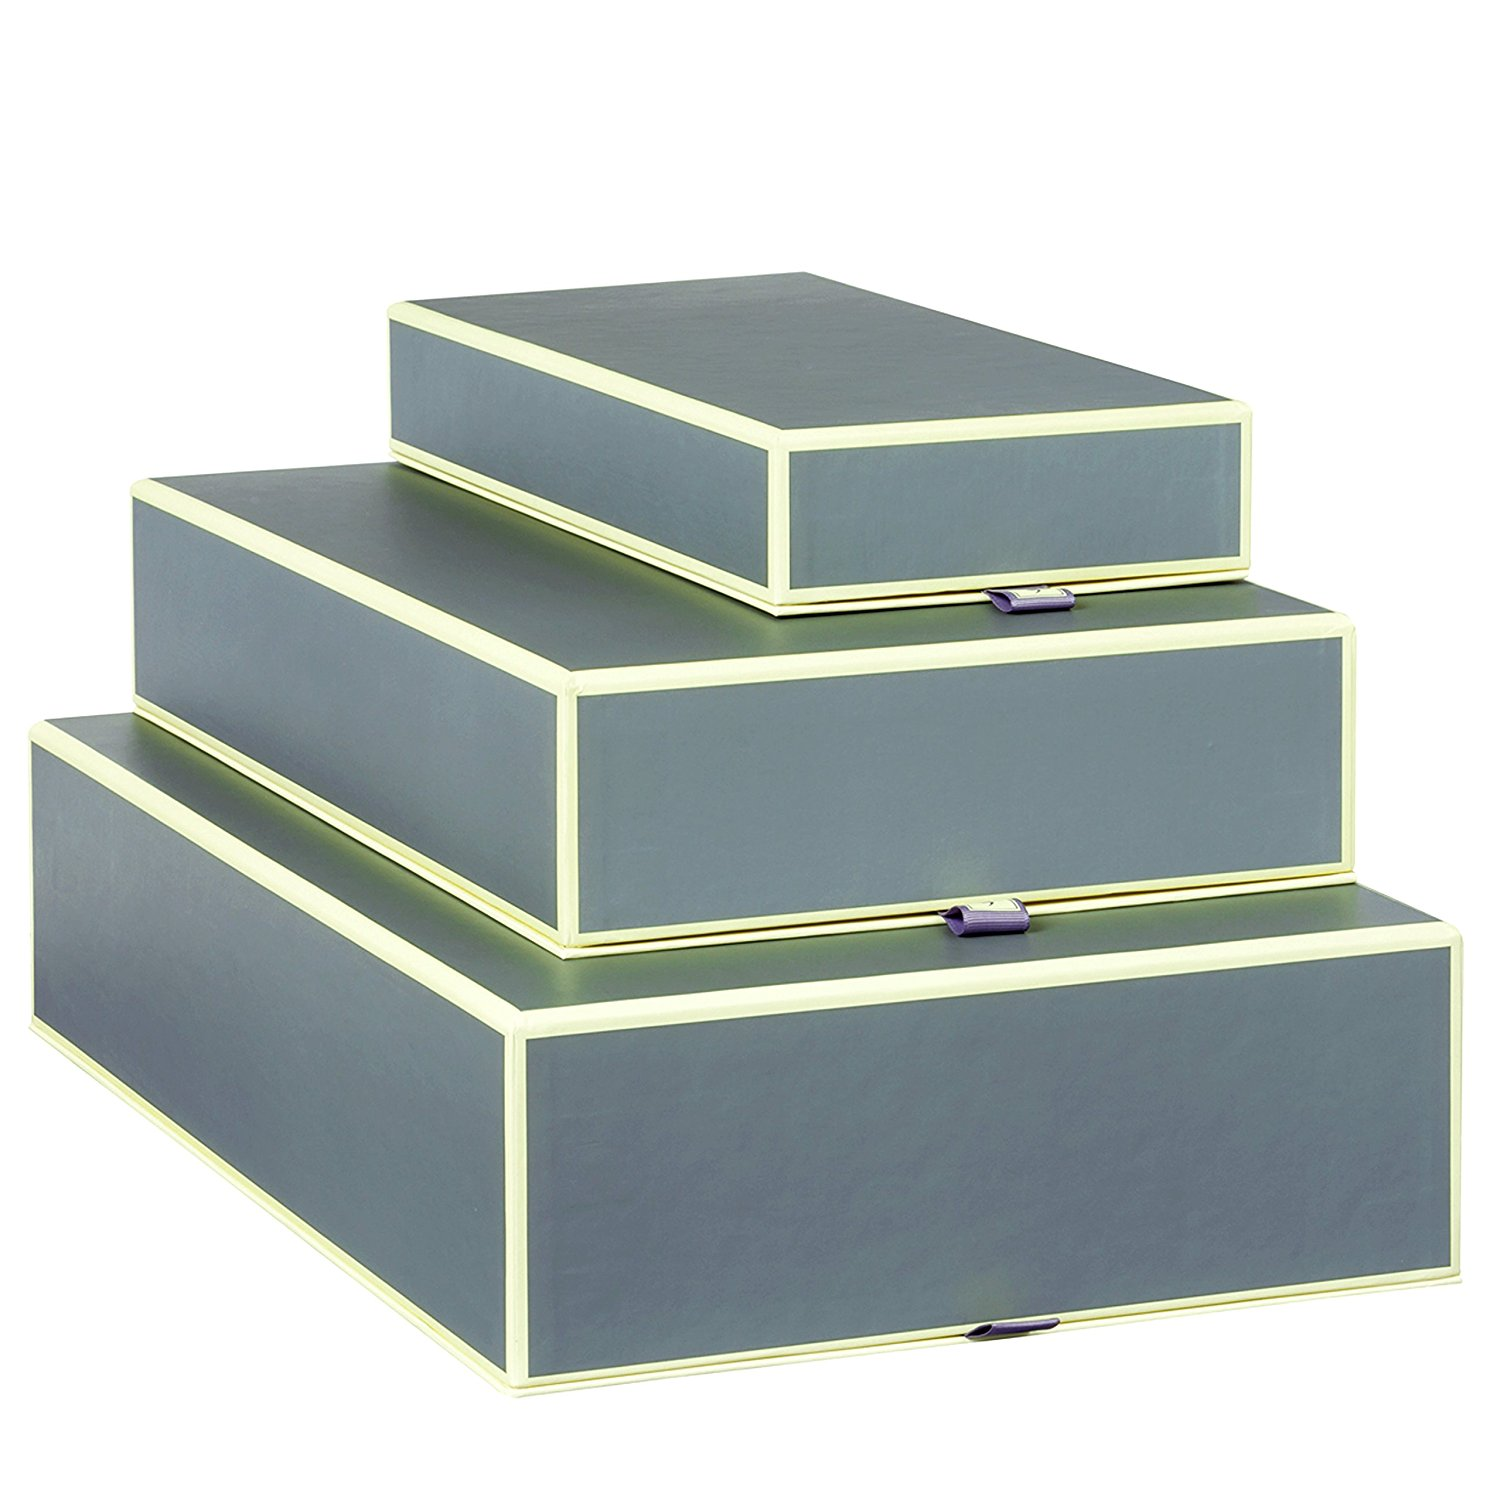 Set of 3 rectangular boxes anthrazit +++ STORAGE- or GIFT BOXES +++ Quality made by Semikolon